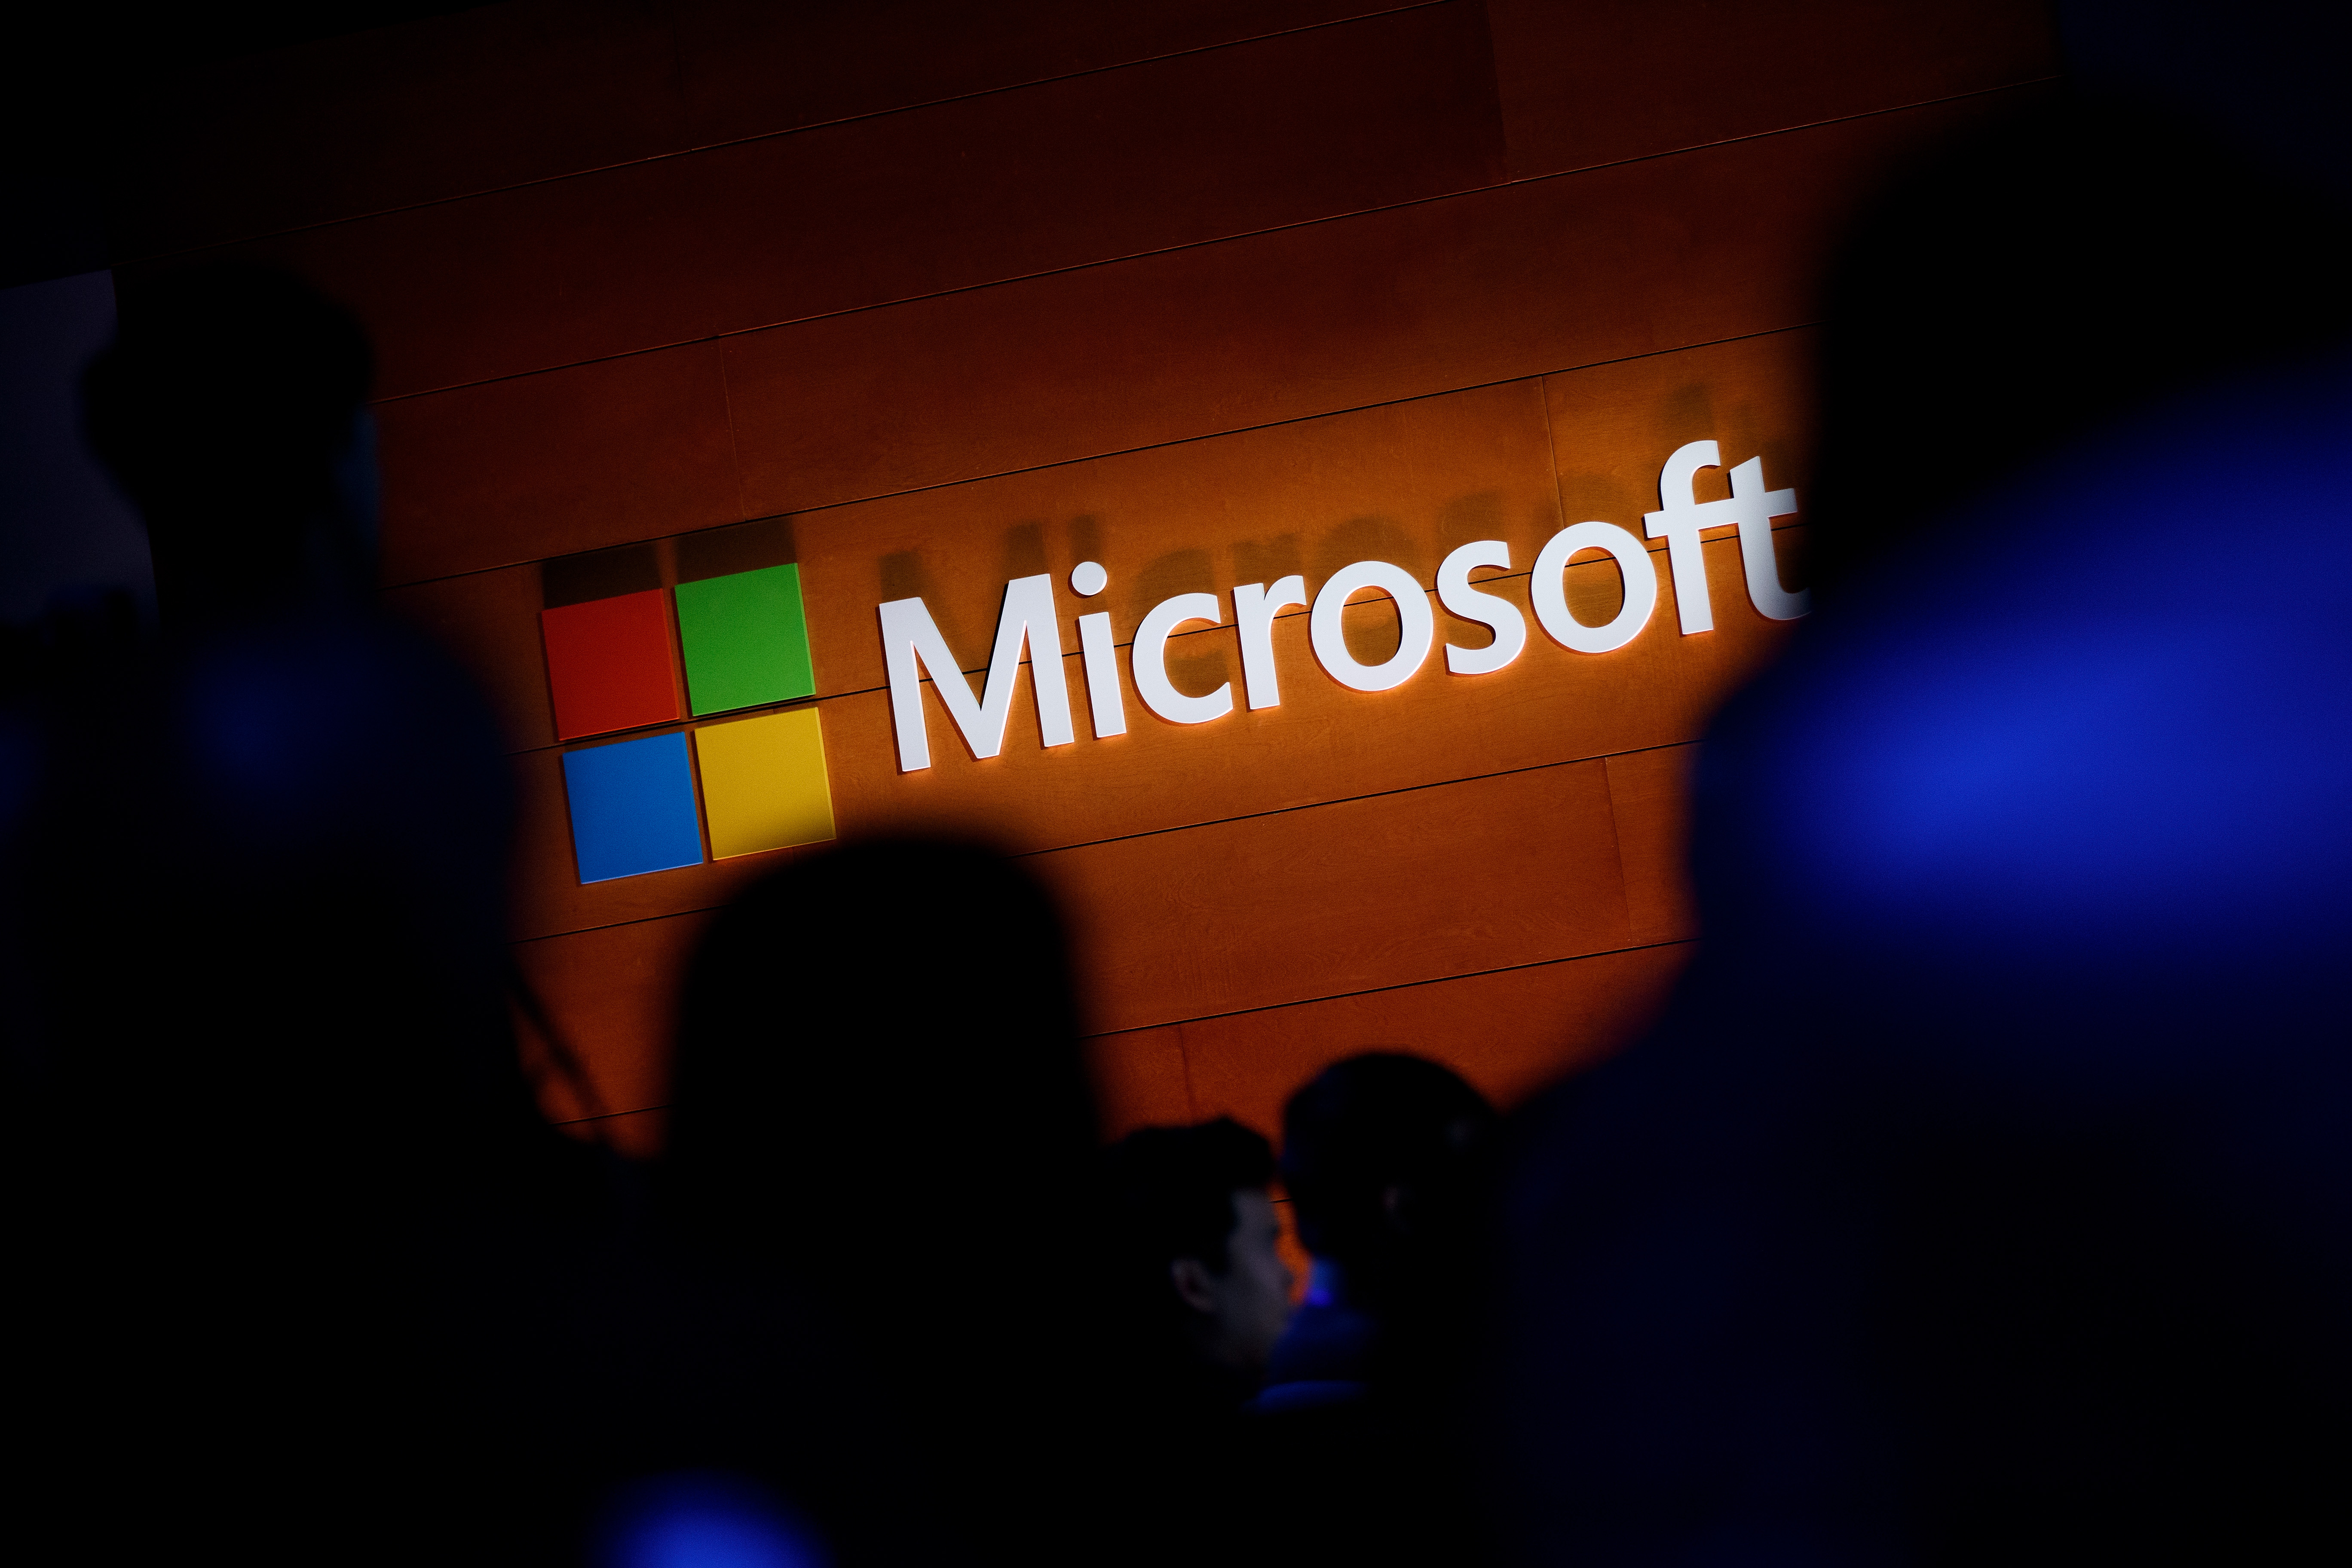 techcrunch.com - Carly Page - Microsoft's cyber startup spending spree continues with CloudKnox acquisition